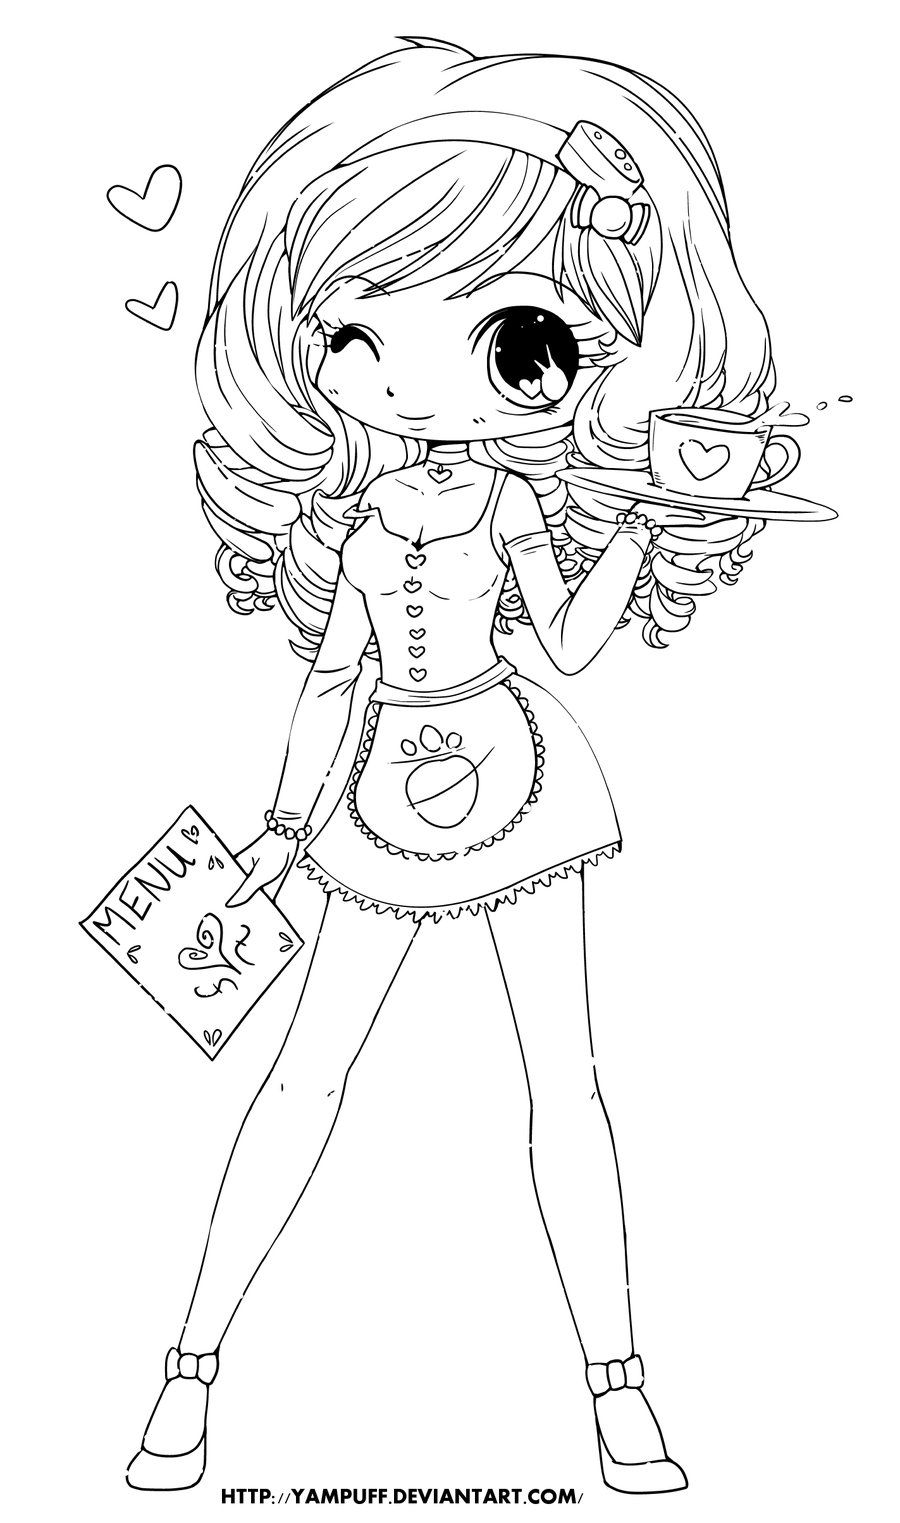 yampuff coloring pages Chloe Lineart by YamPuff on deviantART | Digi stamps/coloring  yampuff coloring pages